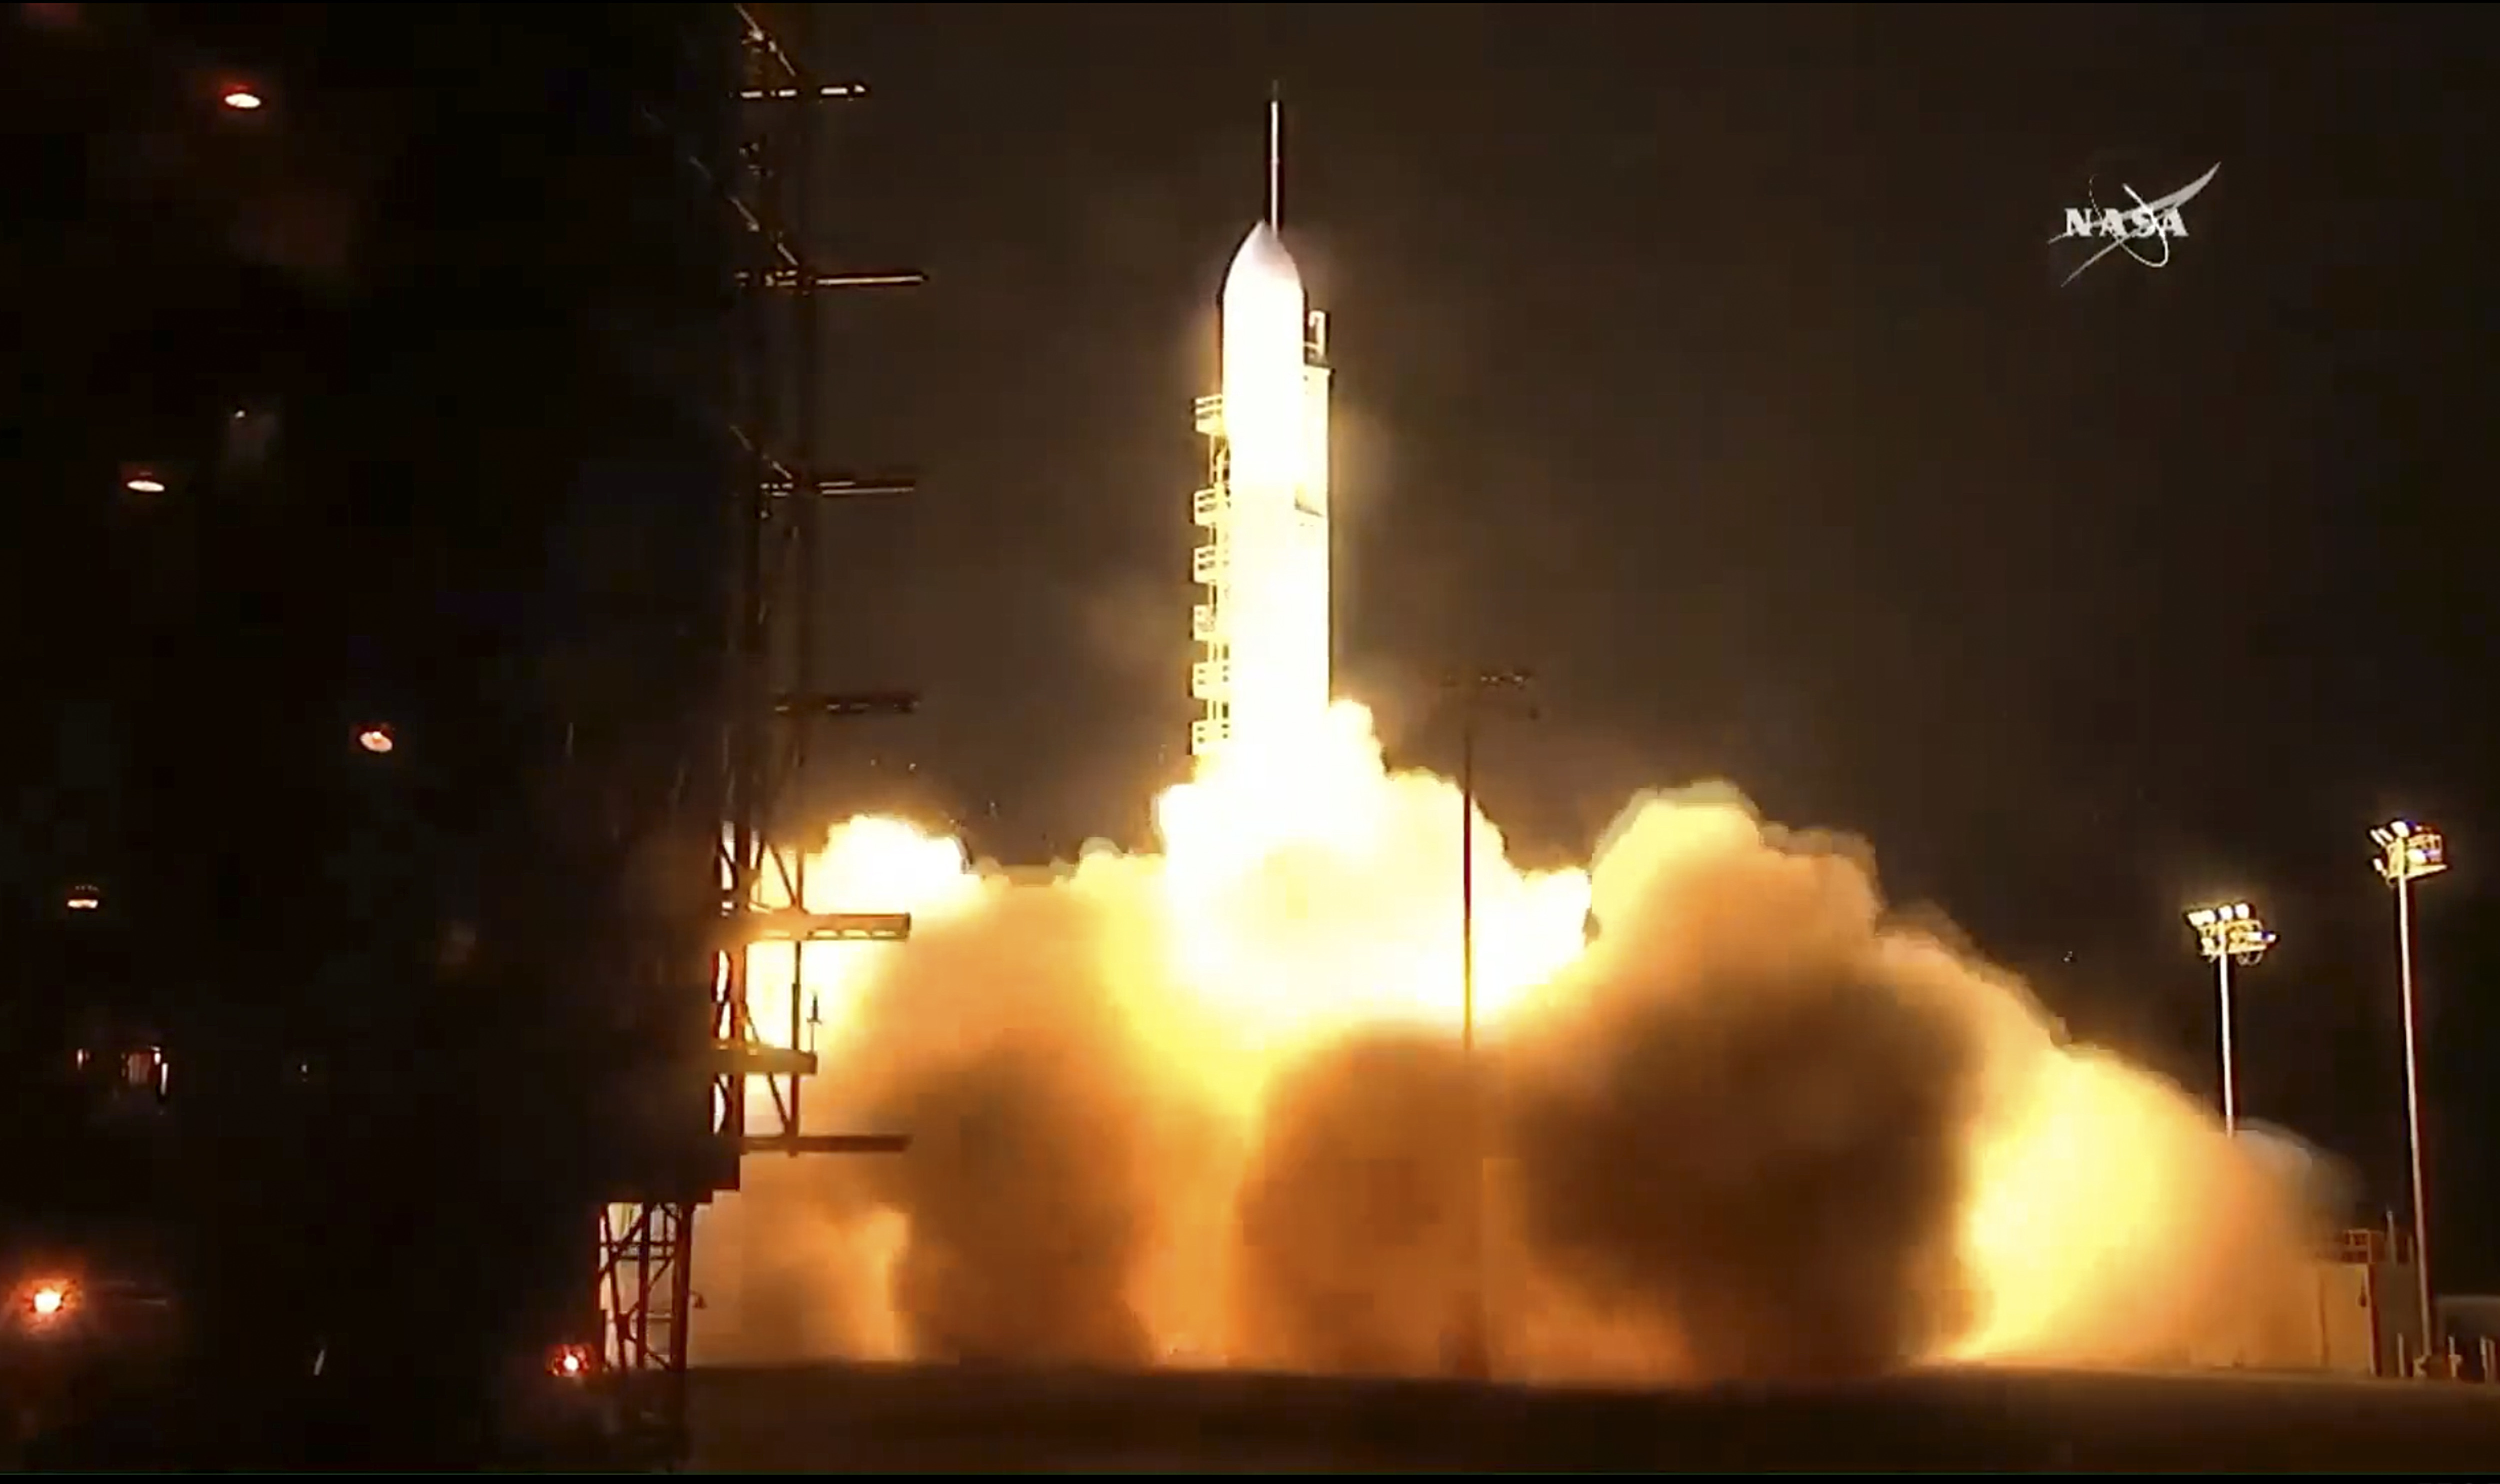 Nasa Launches Weather Satellite To Help Forecast Fire And